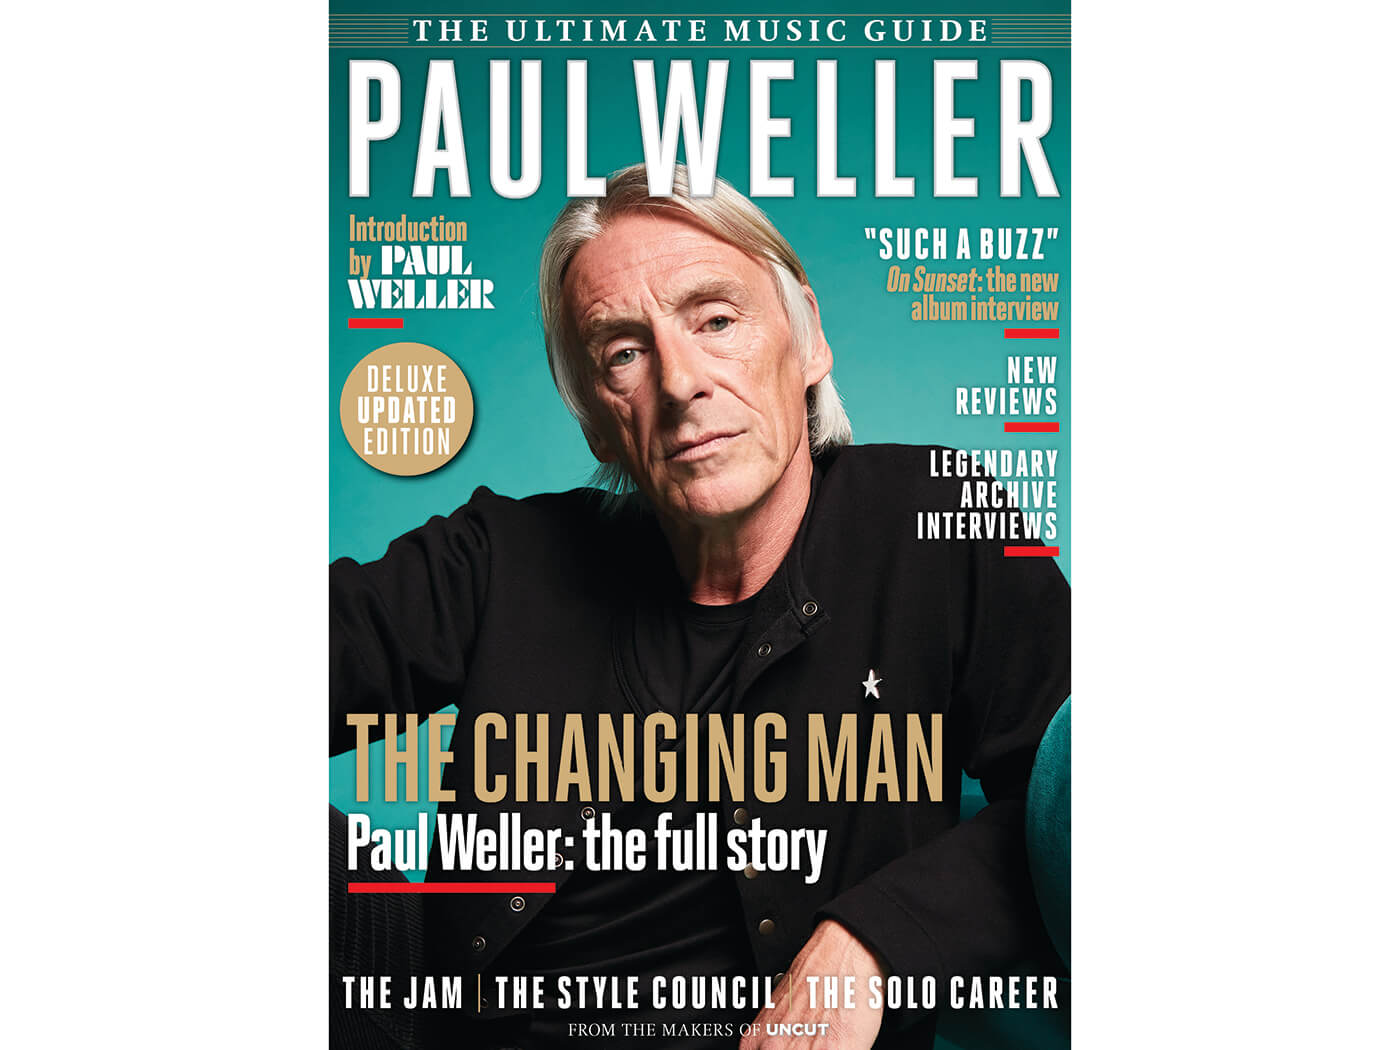 Paul Weller – The Deluxe Ultimate Music Guide